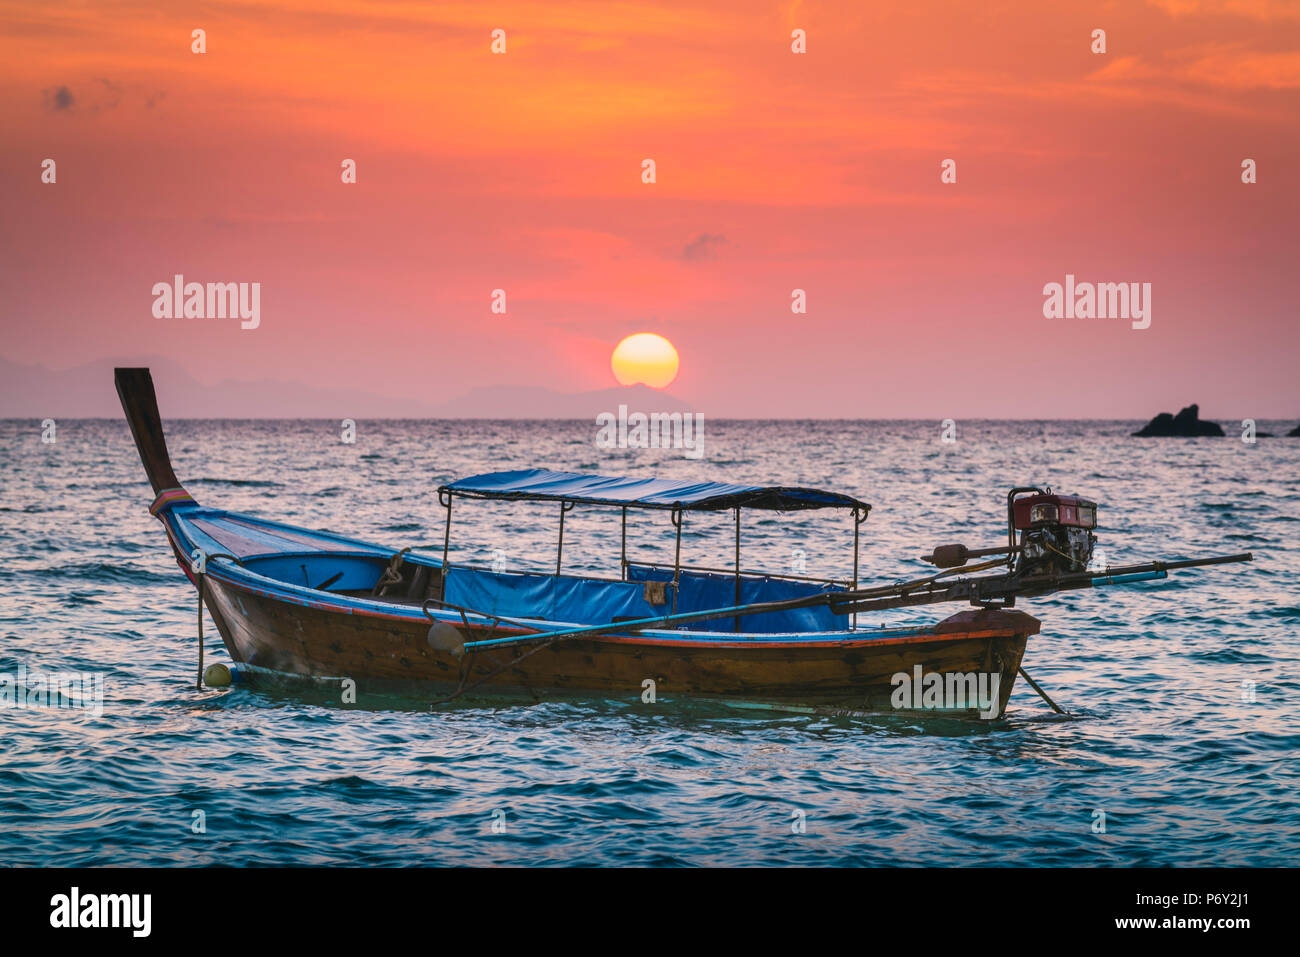 Longtail boats at Sunset Beach, Ko Lipe, Satun Province, Thailand. Traditional long tail boat and rising sun. - Stock Image